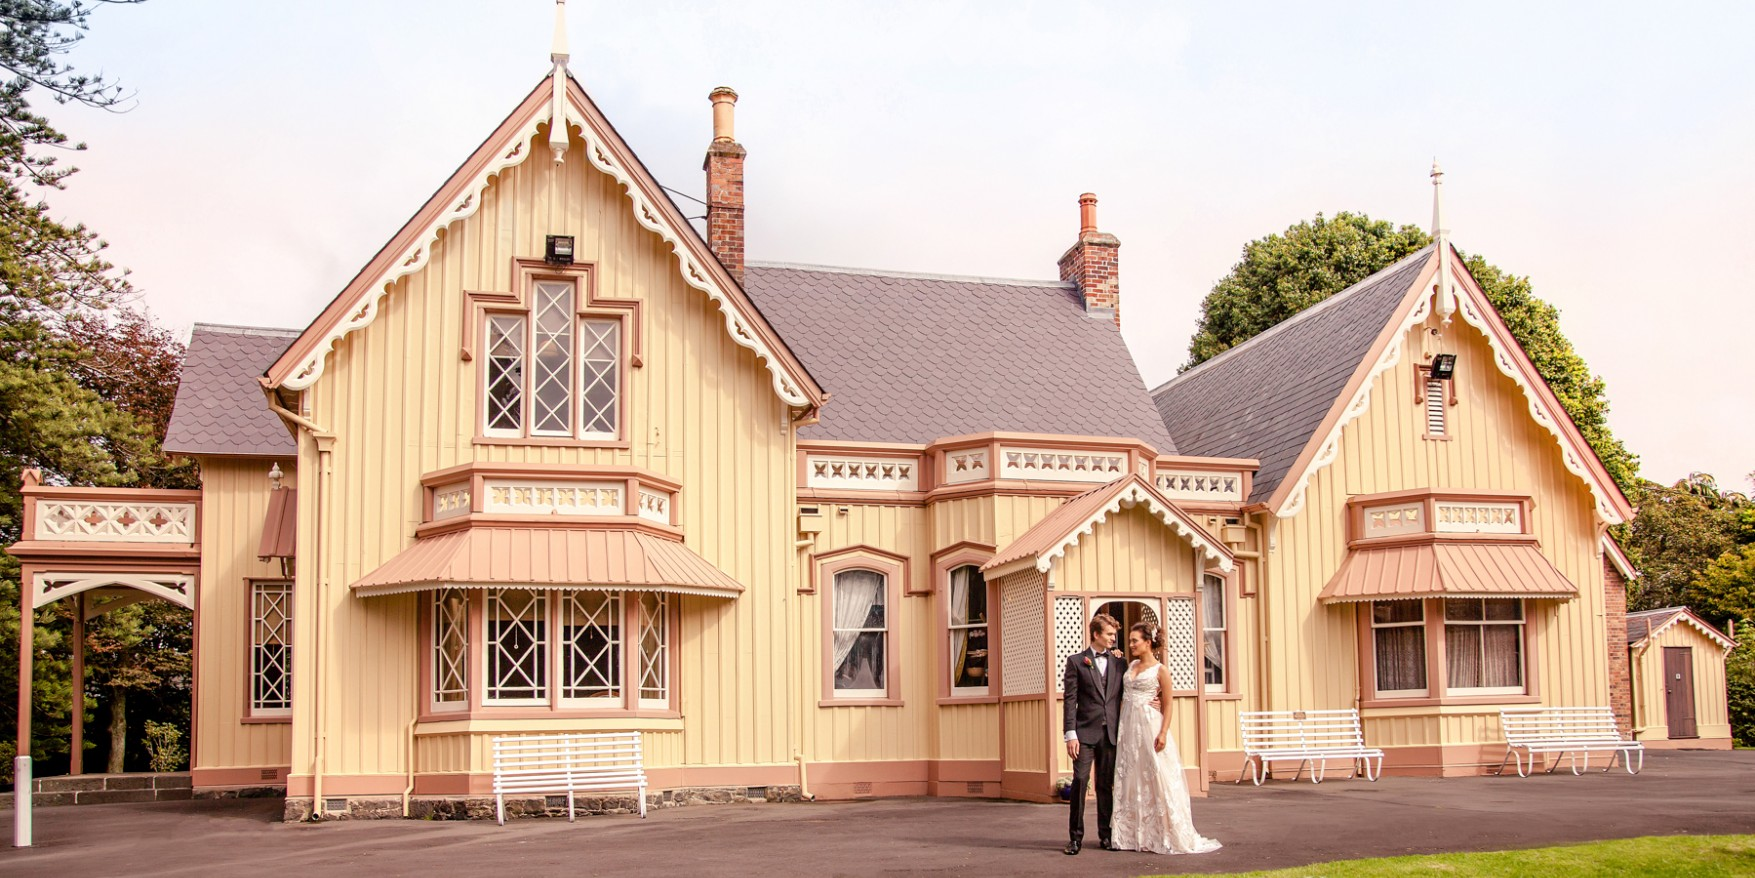 venues, auckland, diy, external, catering, caterer, vendors, nz, wedding, highwic, new market, luxury,